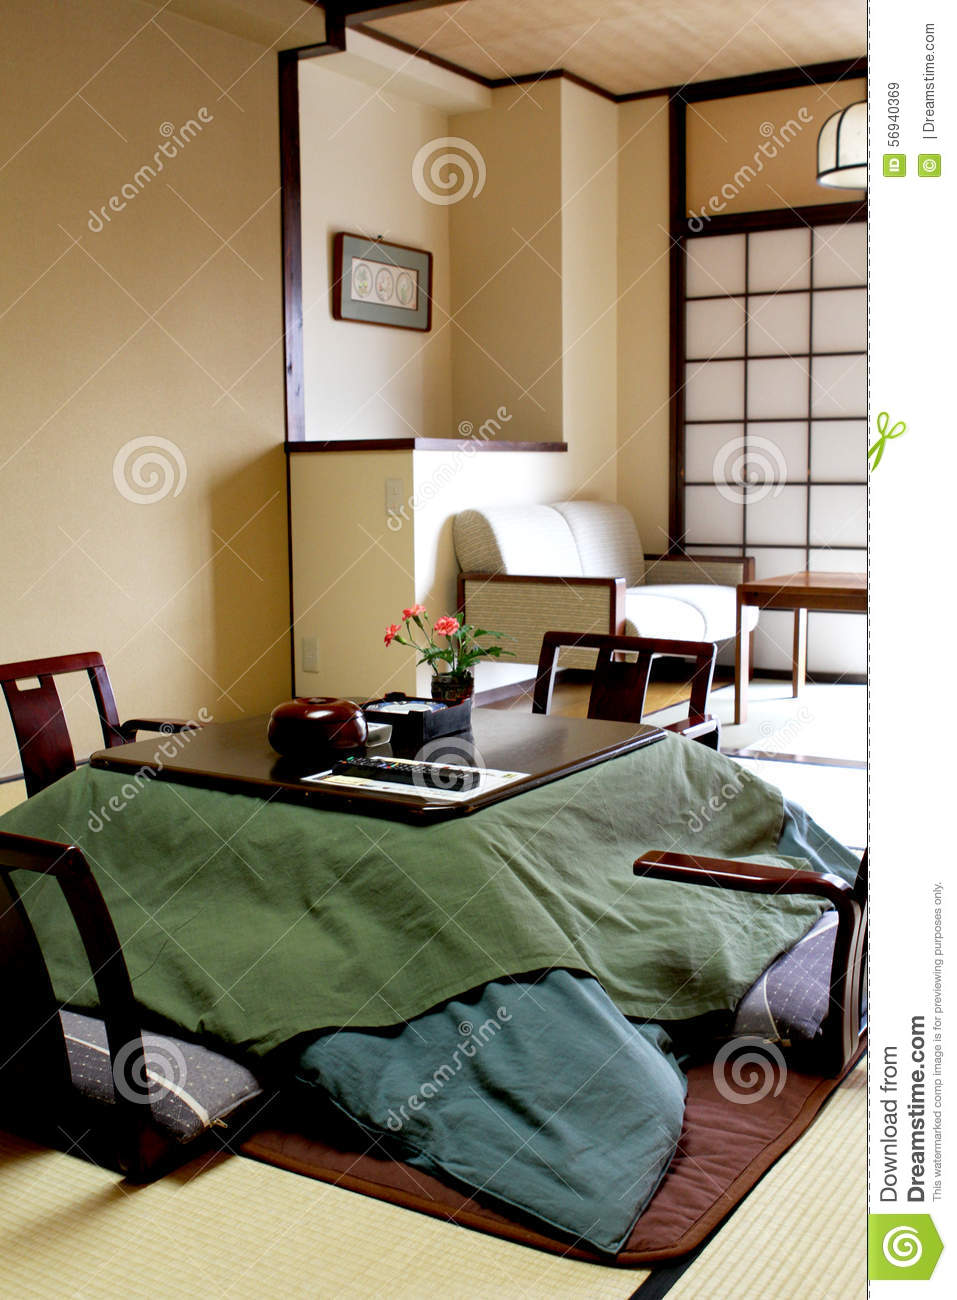 Japanse Slaapkamer Stock Photos - Royalty Free Pictures